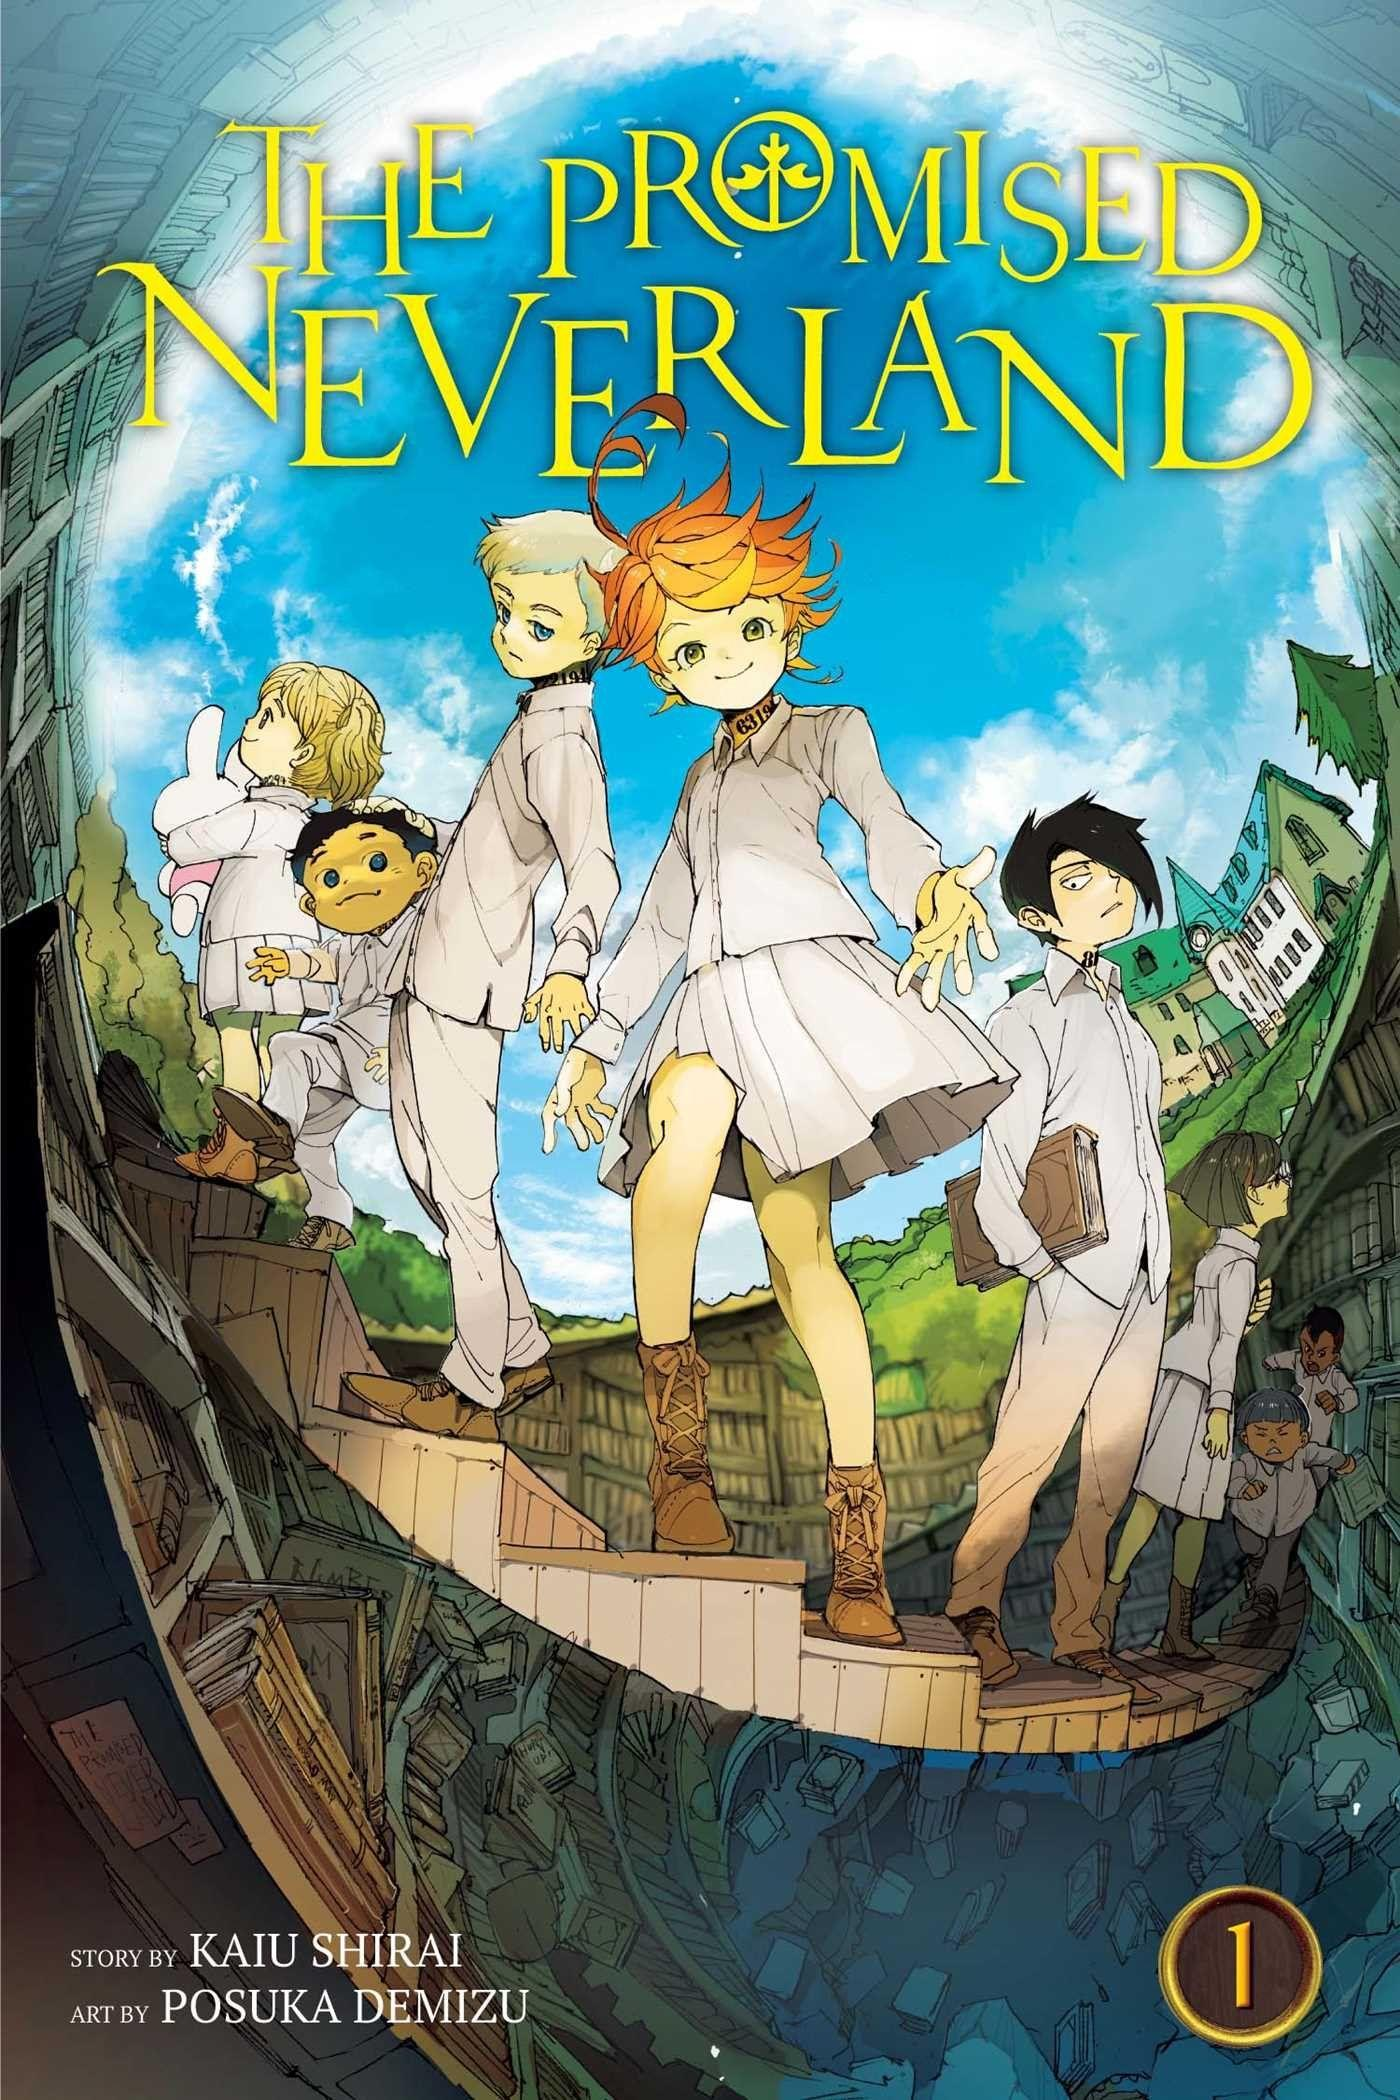 The Promised Neverland, Vol. 1: Amazon.co.uk: Kaiu Shirai, Posuka